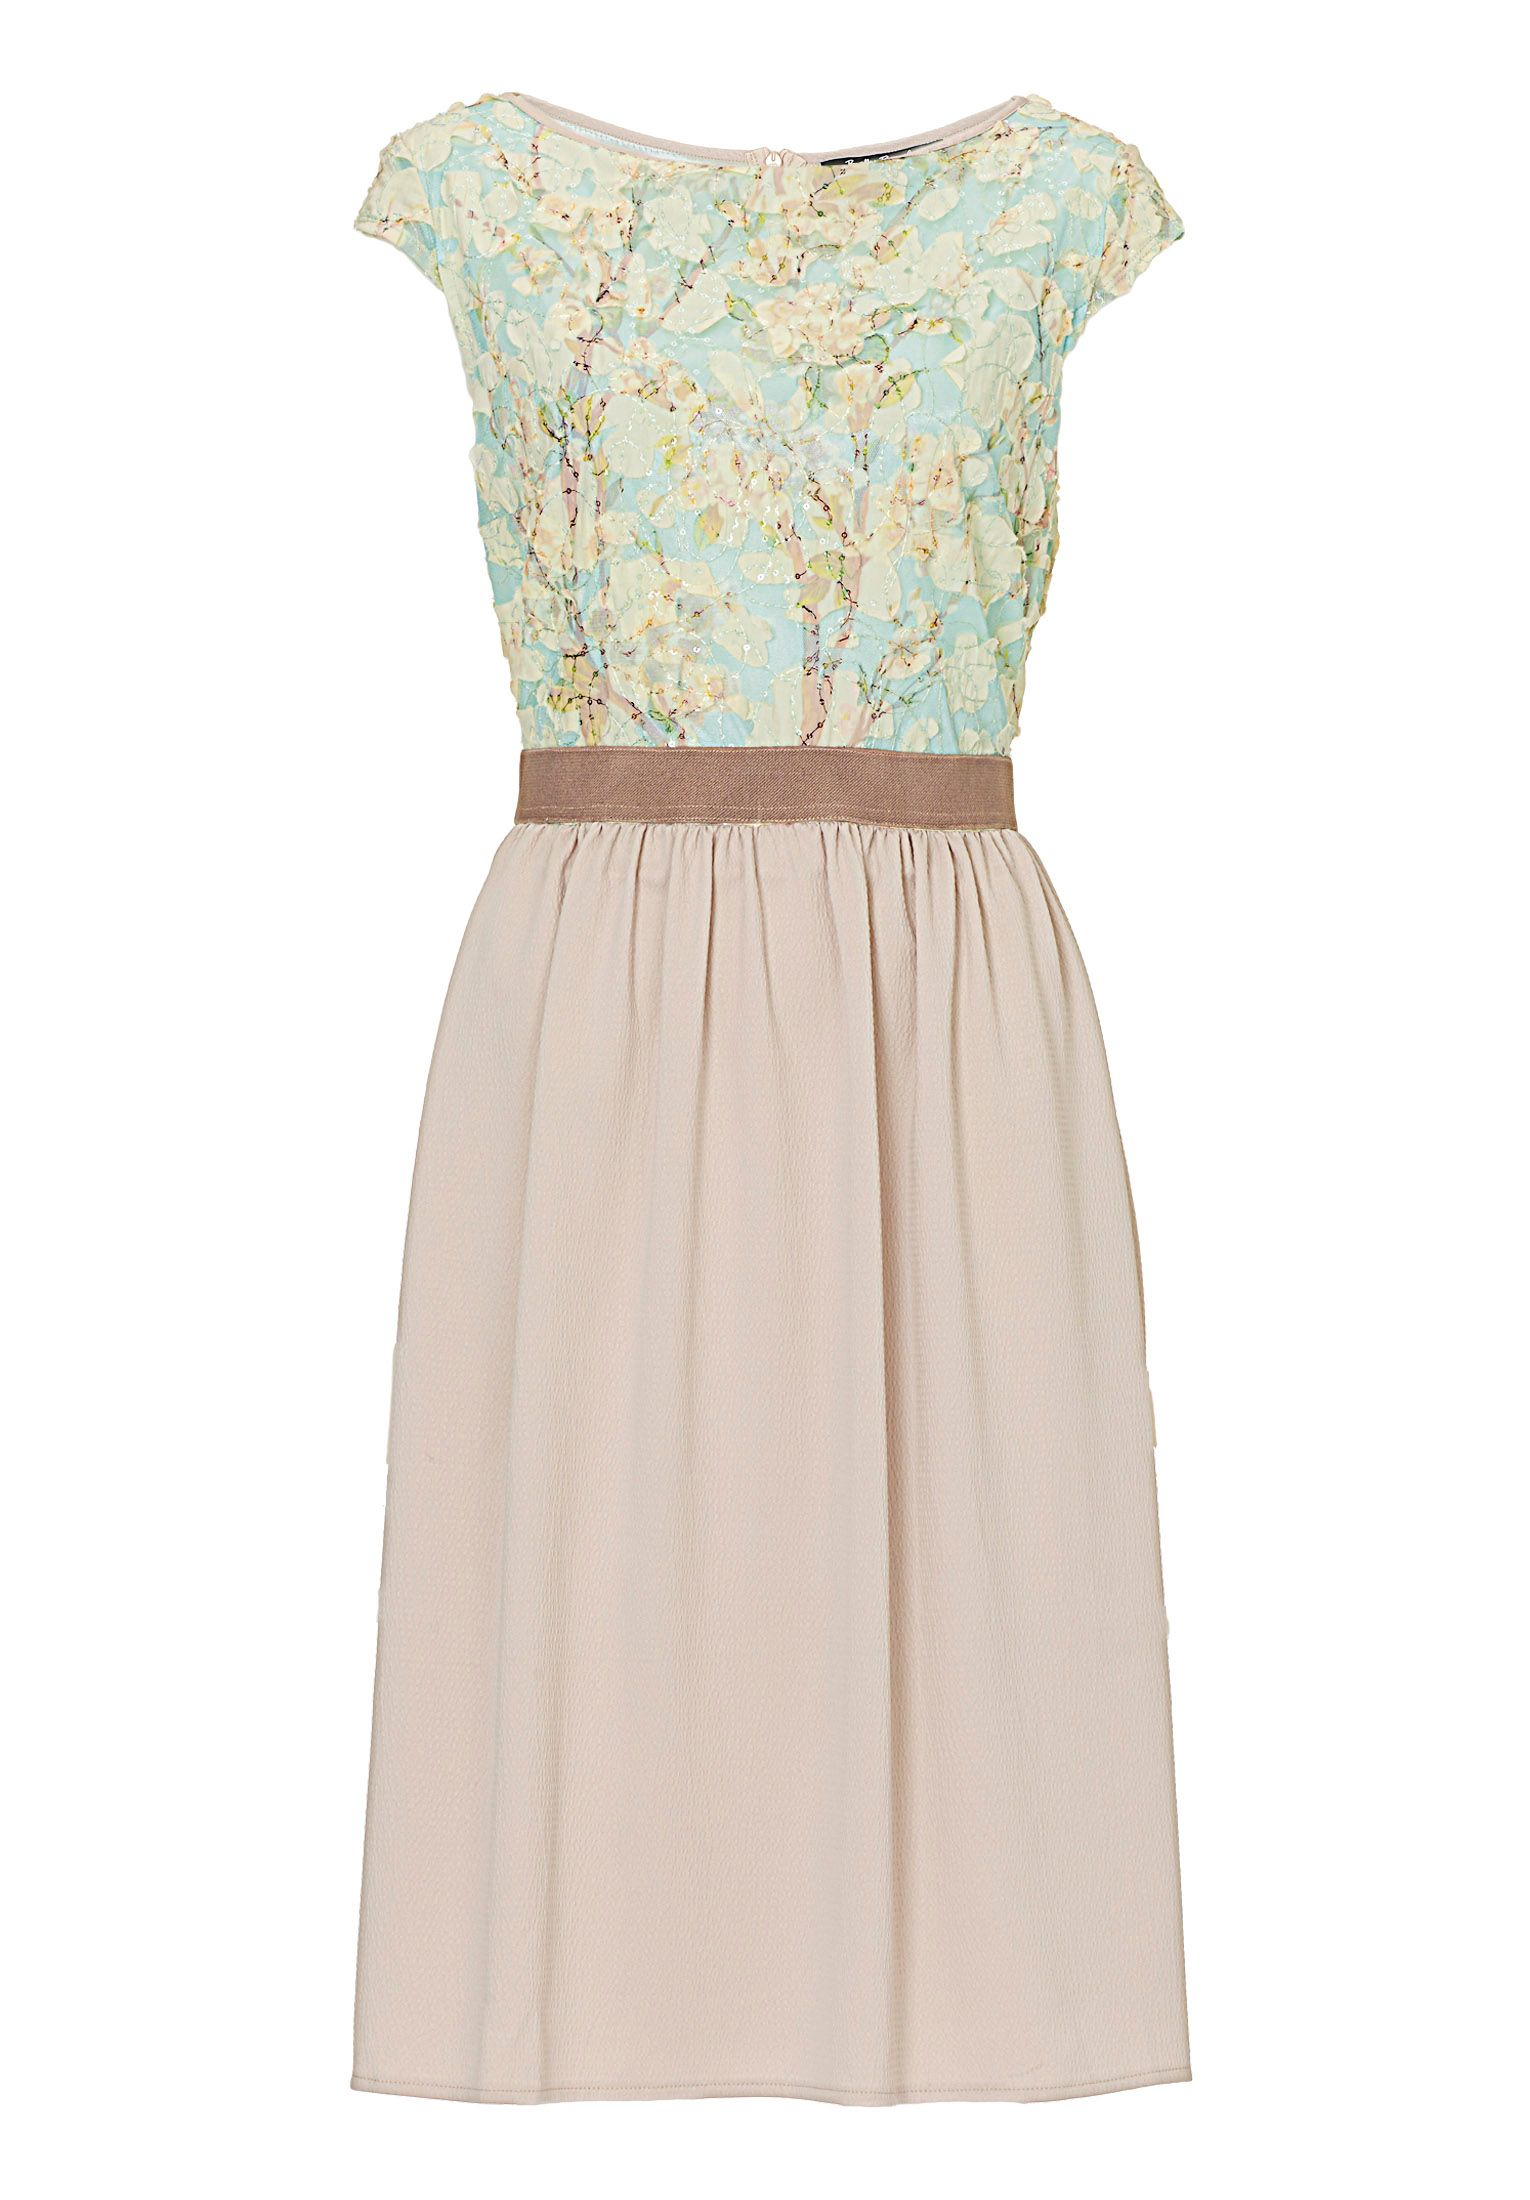 Betty barclay floral cut out dress in natural lyst for Betty barclay